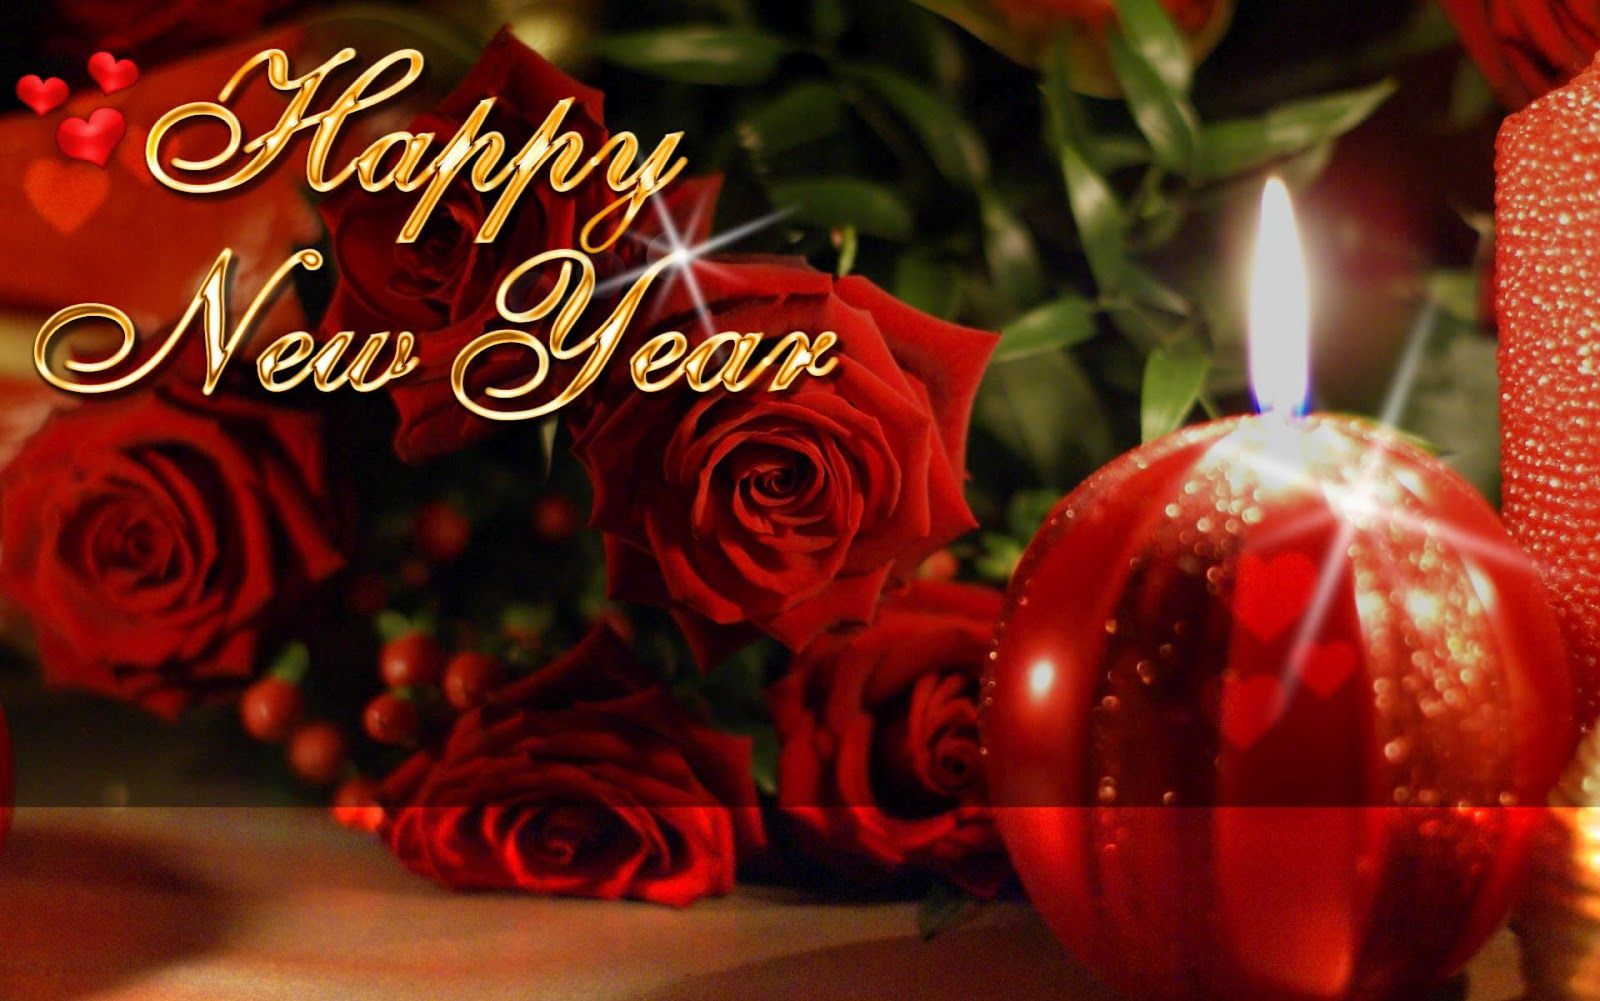 Christmas And New Year Greetings Quotes 3 3g Koehler Cyber Cafe